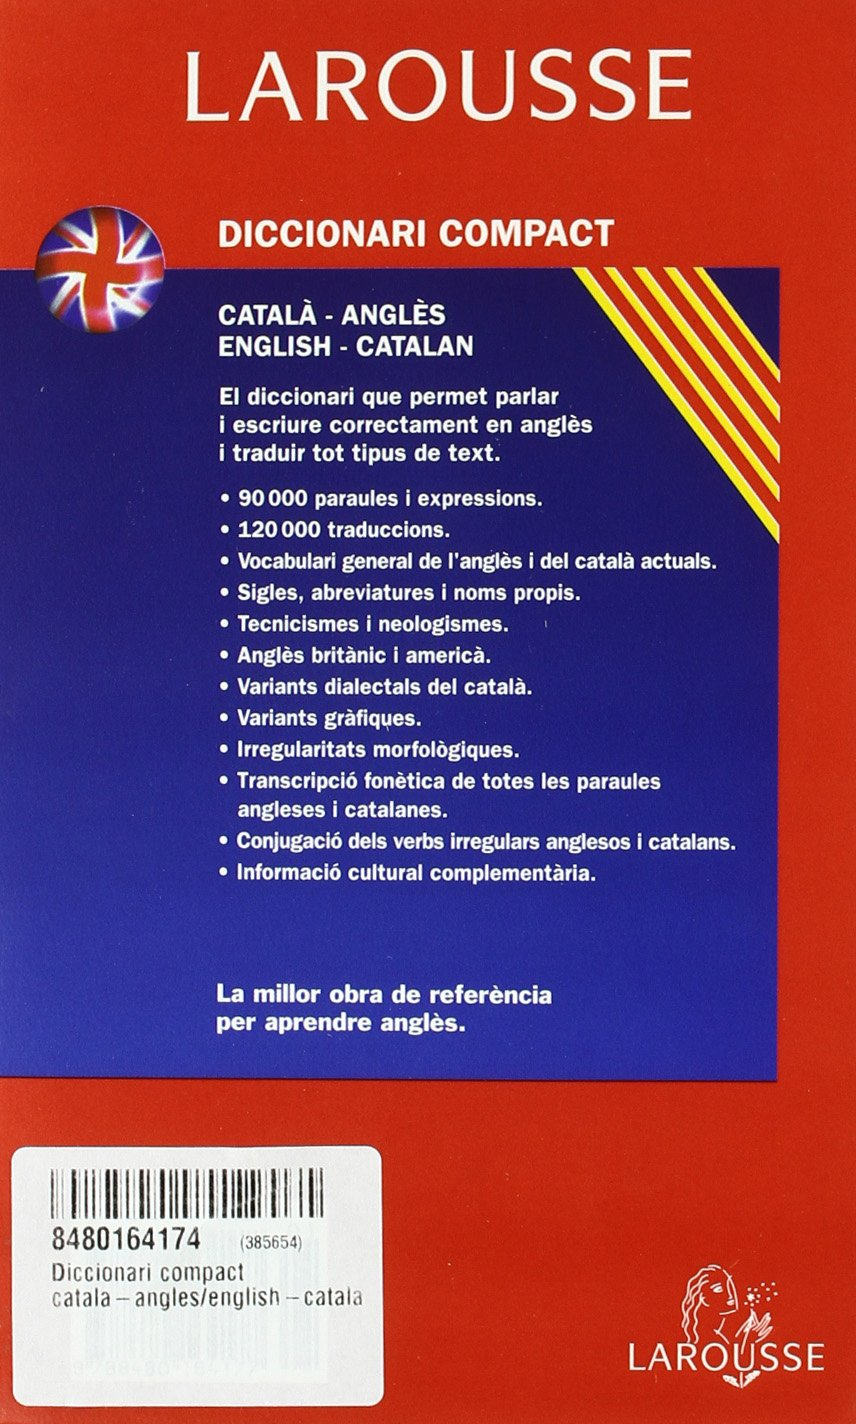 Larousse Diccionari Compact Catala Angles - English Catalan/ Larousse  Compact Catalan - English Dictionary (Catalan and English Edition): Laura  Estevez del ...